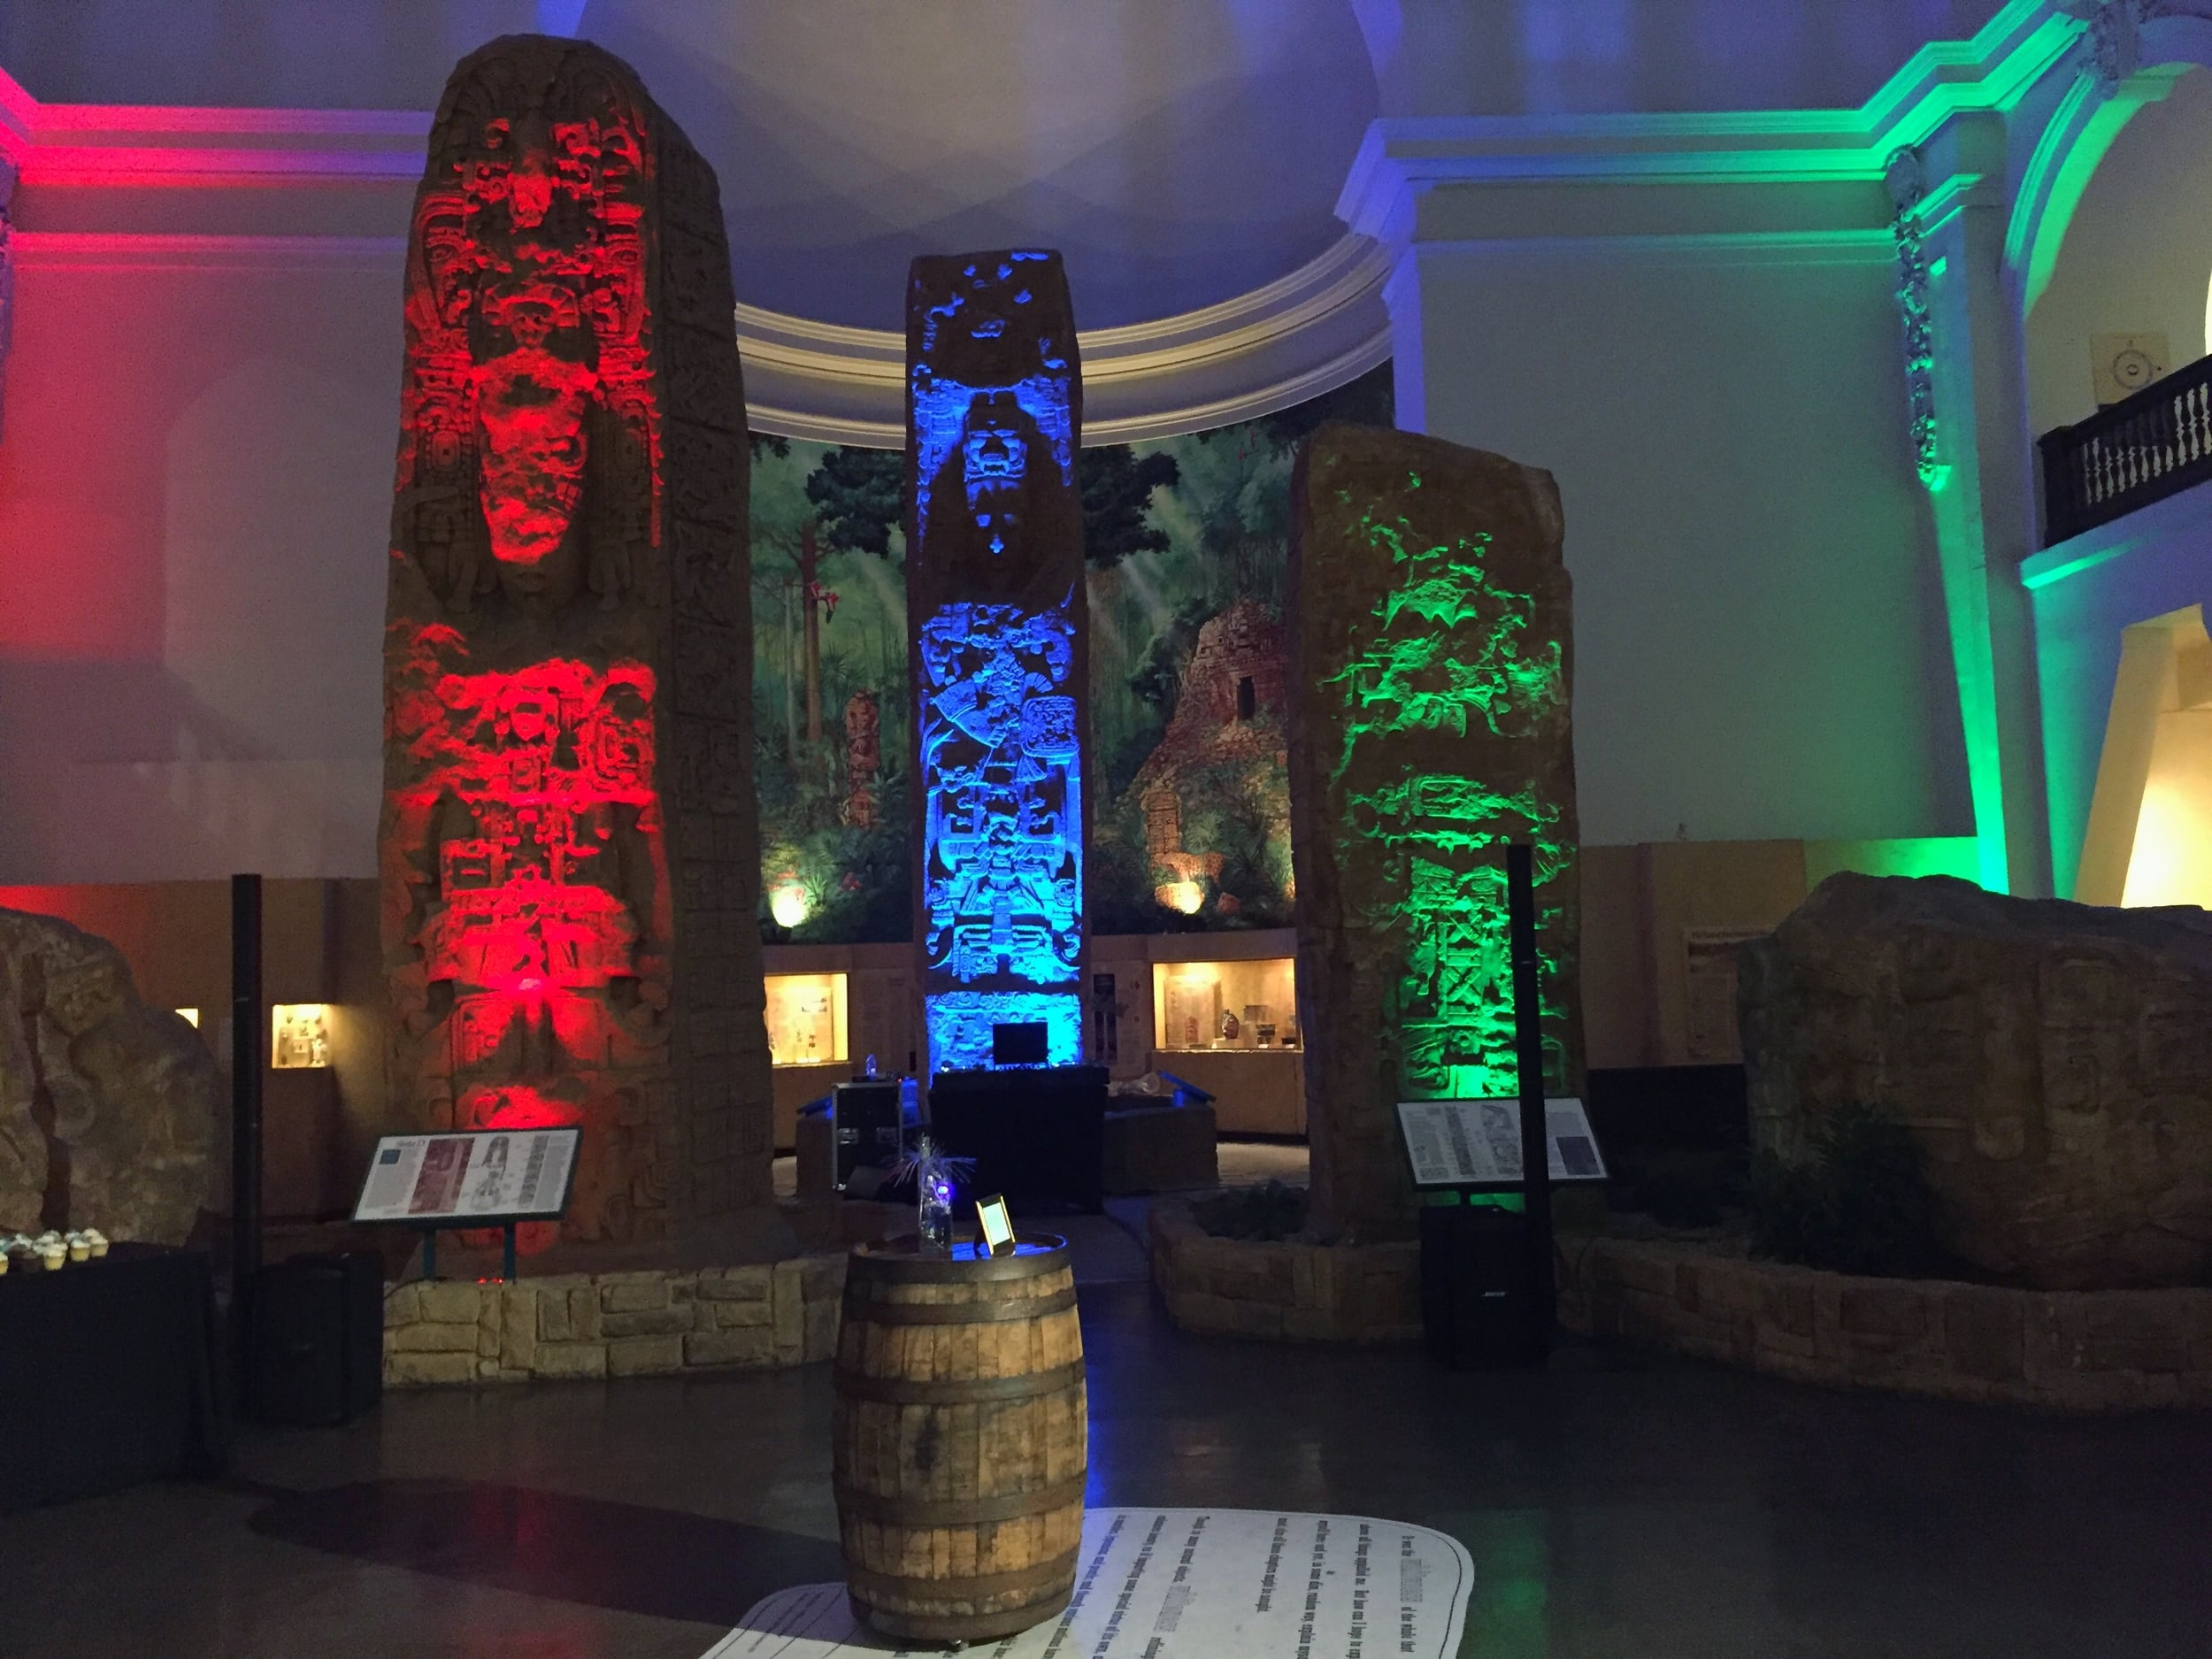 Uplighting creates a dramatic effect on the high ceilings and exhibits at the Museum of Man in Balboa Park.